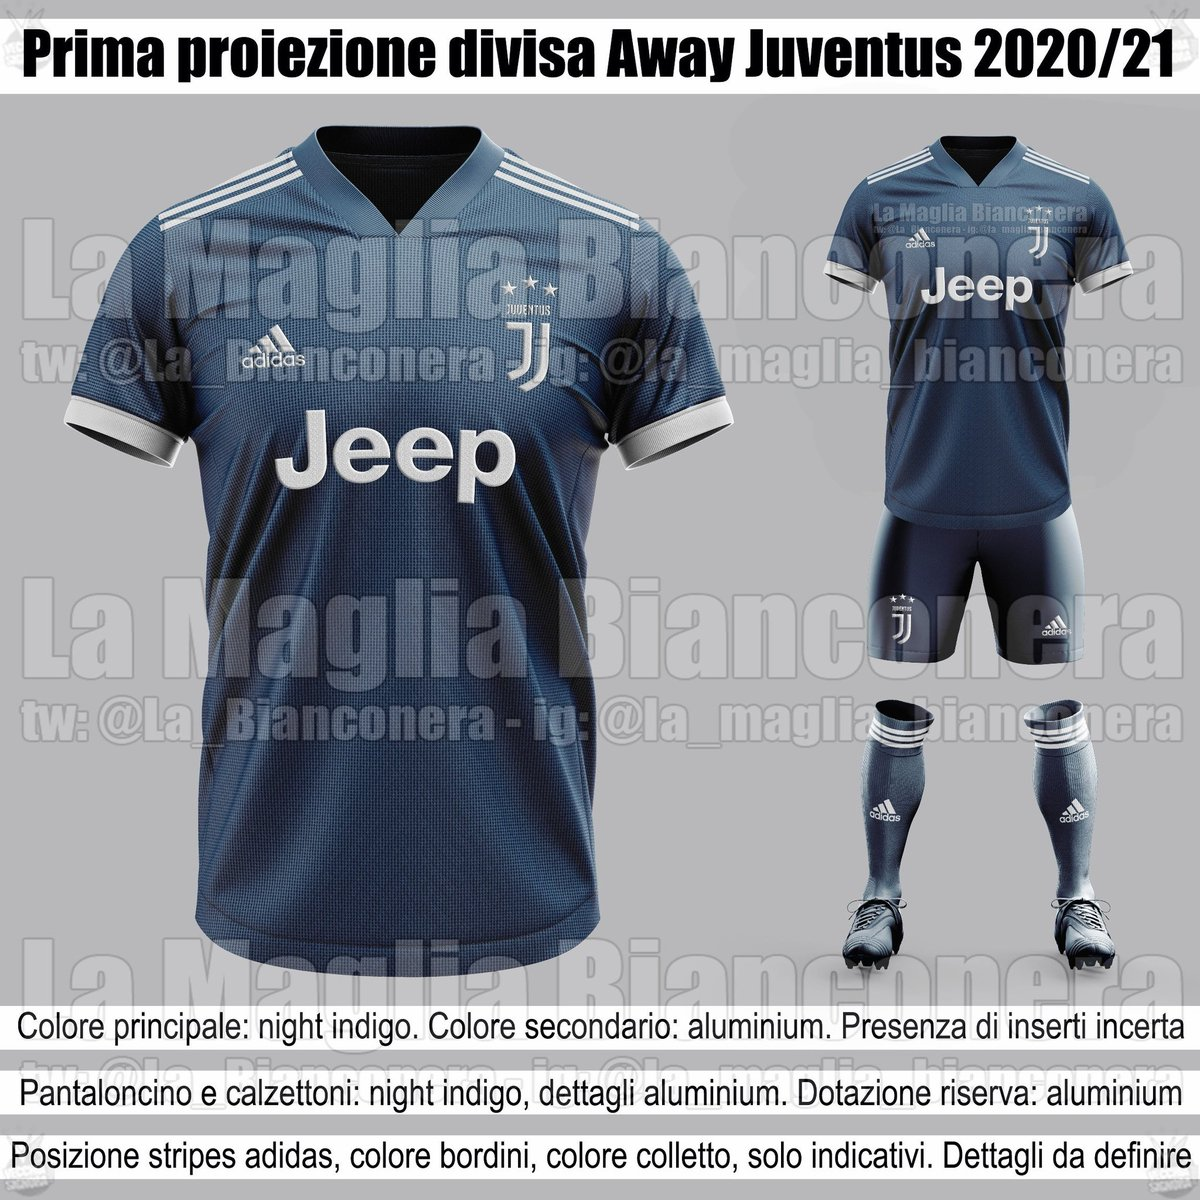 Juvefc On Twitter Projection For The Juventus Away Kit 2020 21 La Bianconera